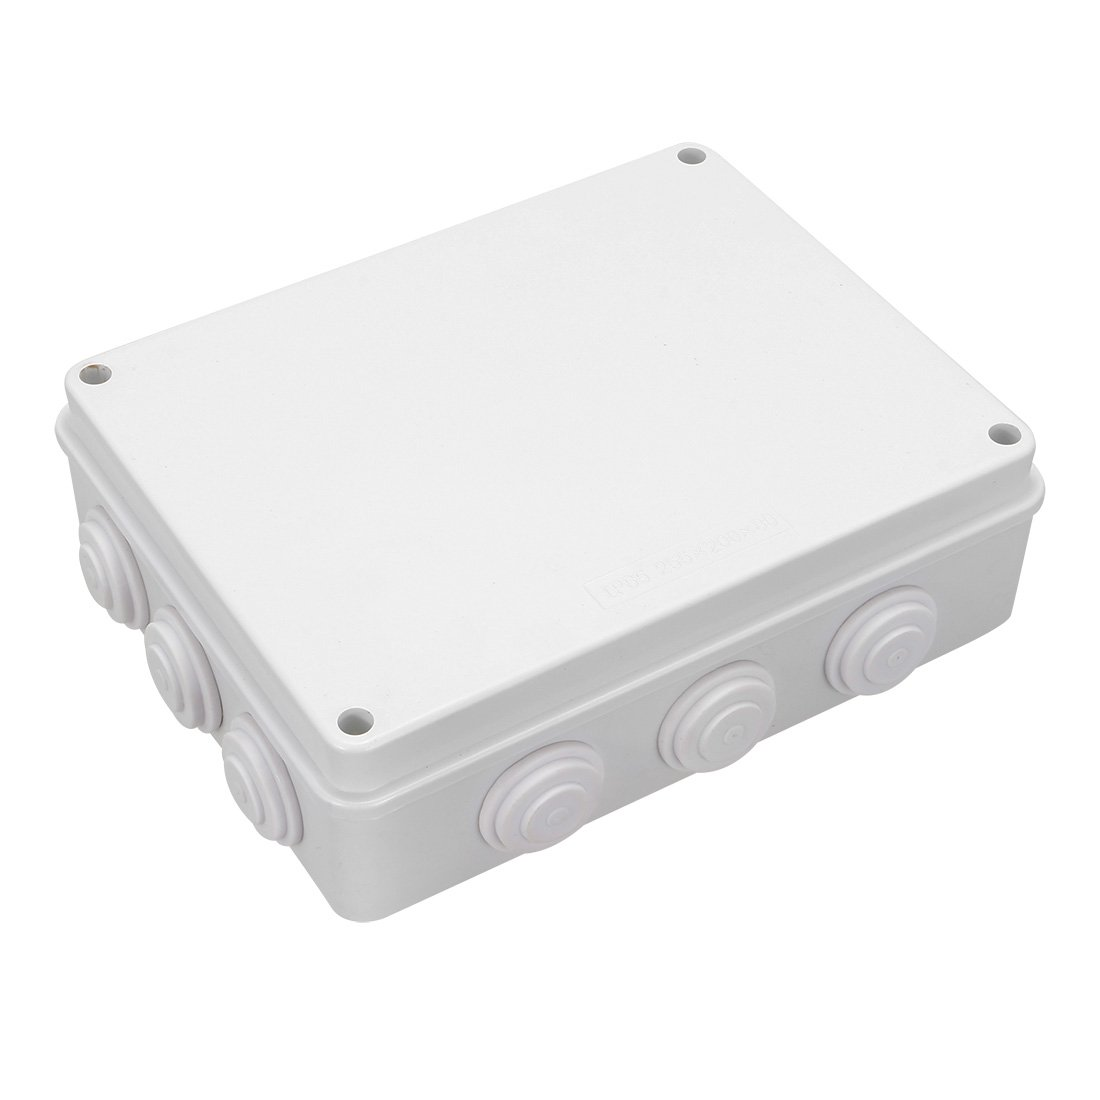 uxcell 10.04 x 7.87 x 2.99 255mmx200mmx76mm ABS Junction Box Universal Project Enclosure White